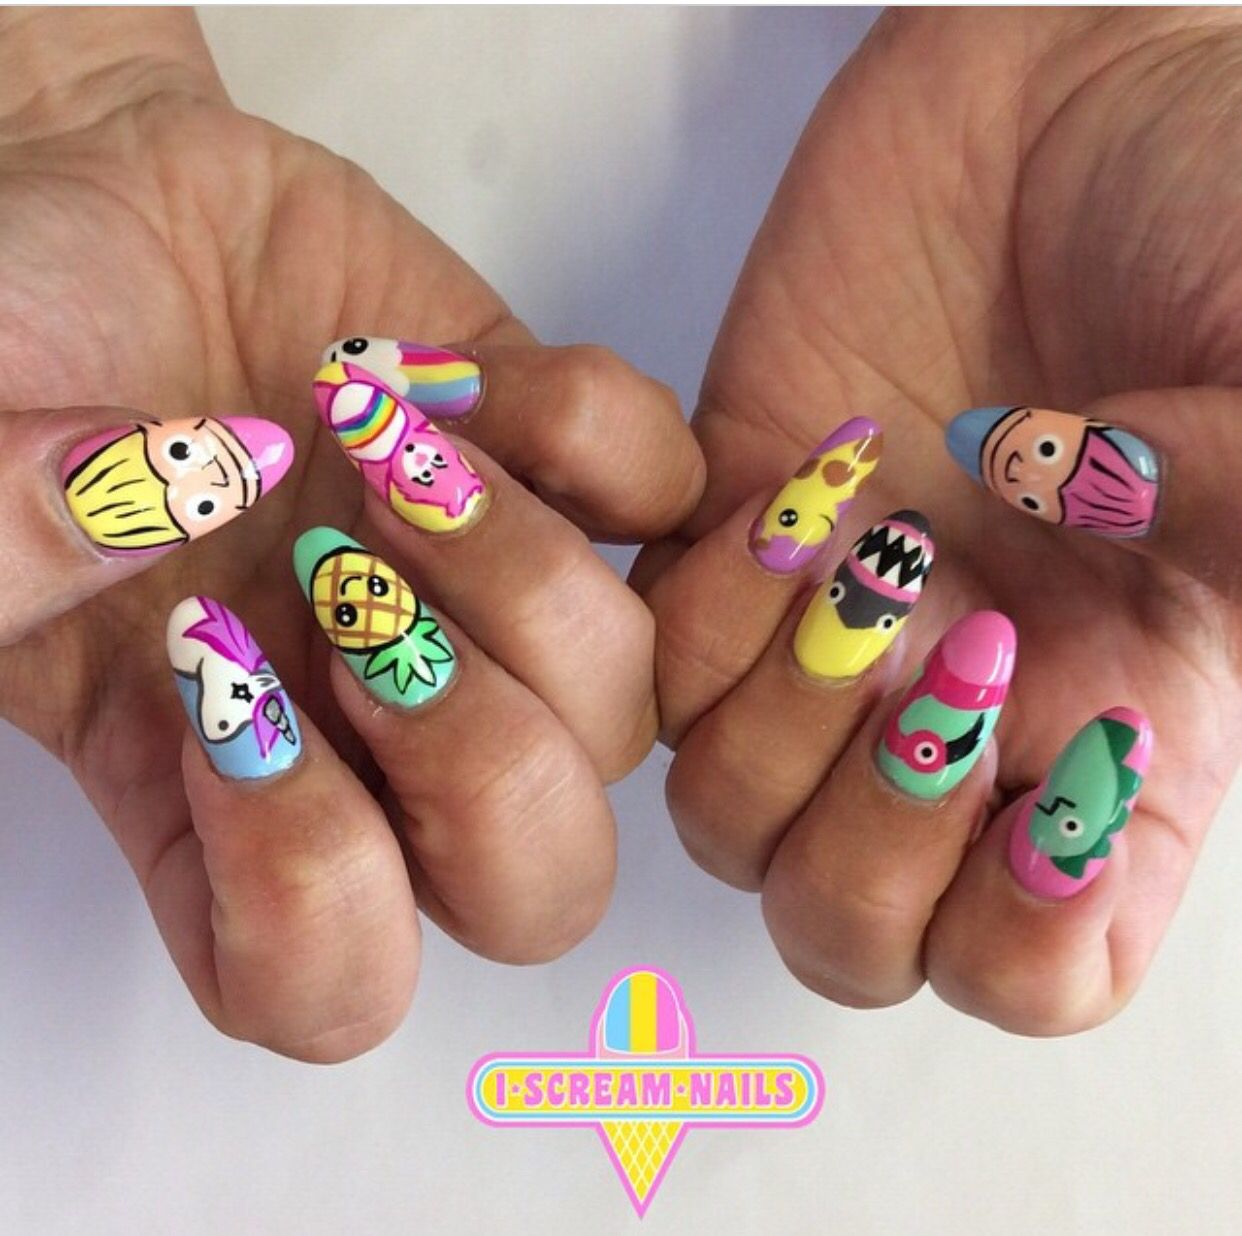 Pin By I Scream Nails On I Scream Nails Nail Art Pinterest